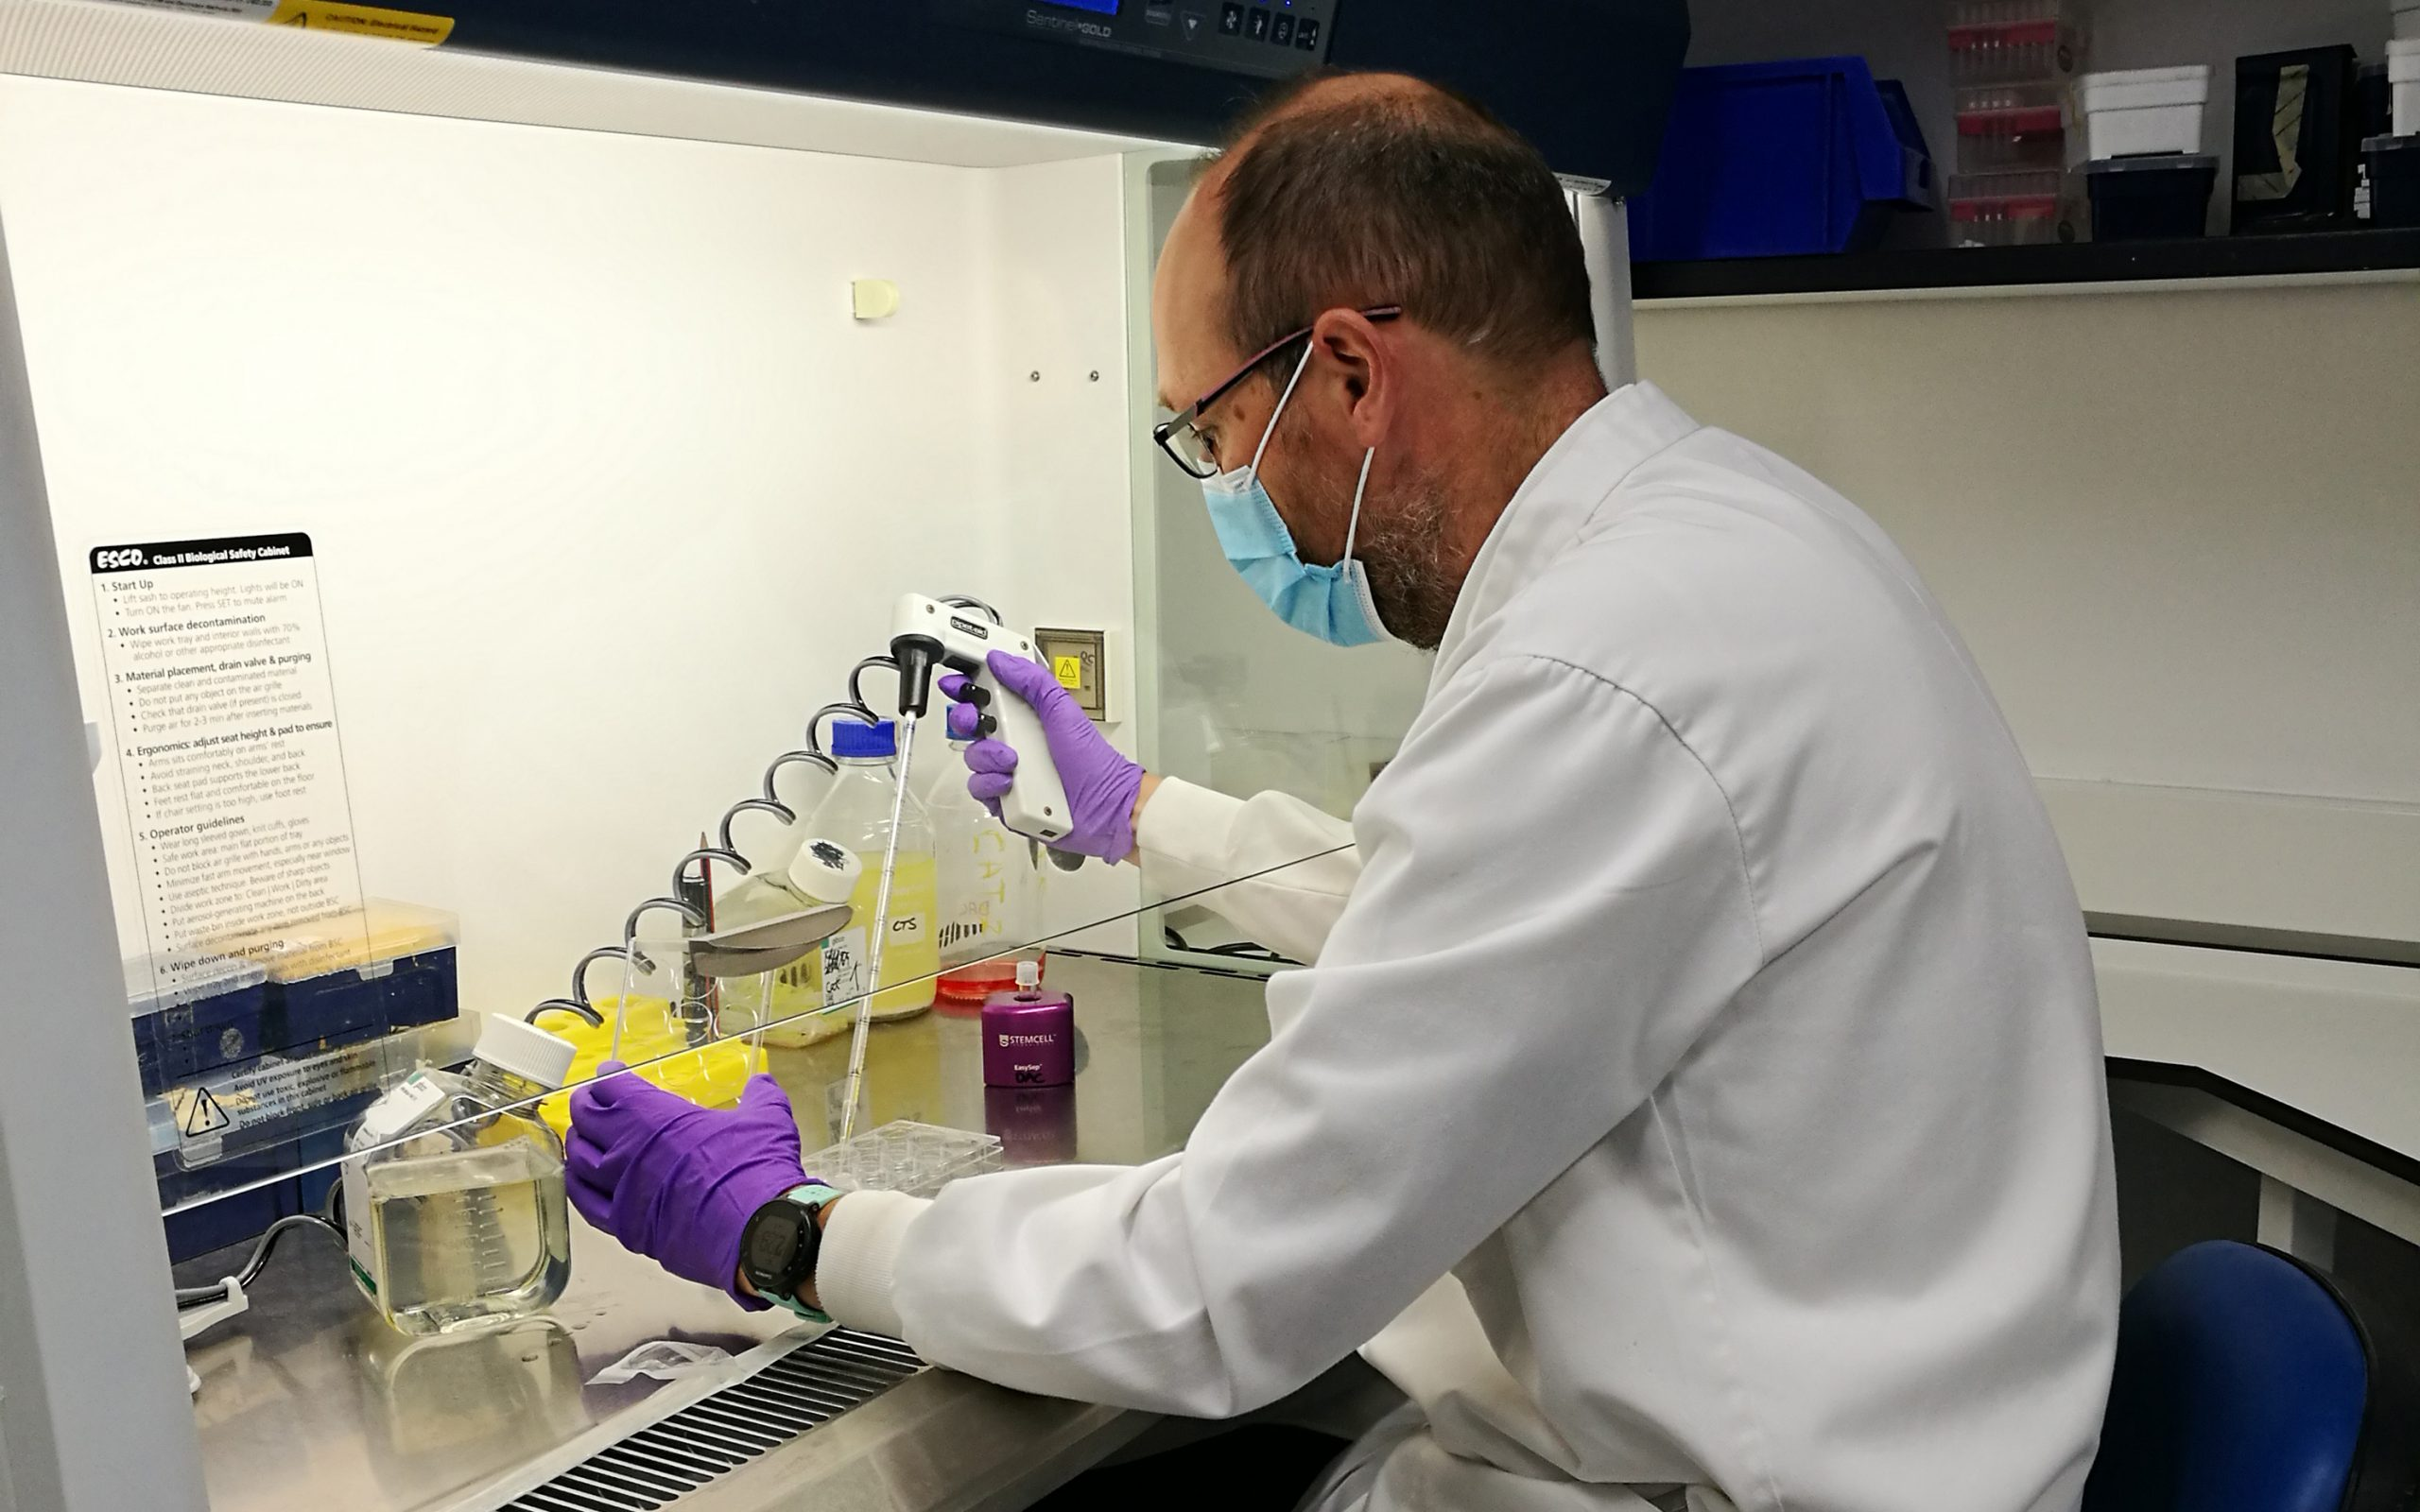 Andy Howden sits in a lab, working on an experiment.